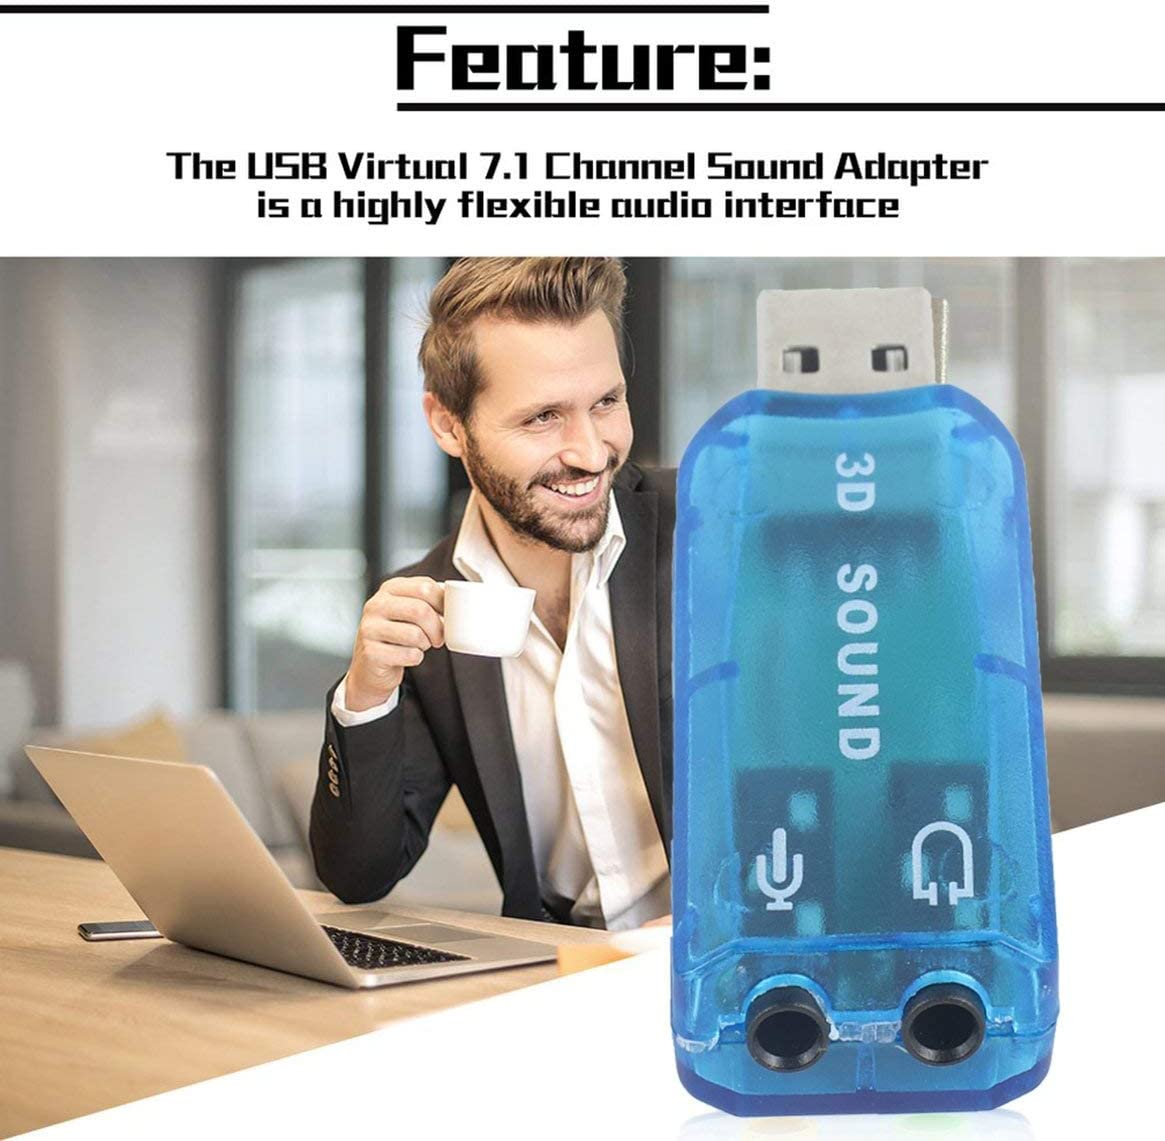 Portable Compact 3D Audio Card USB 1.1 Mic//Speaker Adapter 7.1 CH Surround Sound for PC Computer Laptop